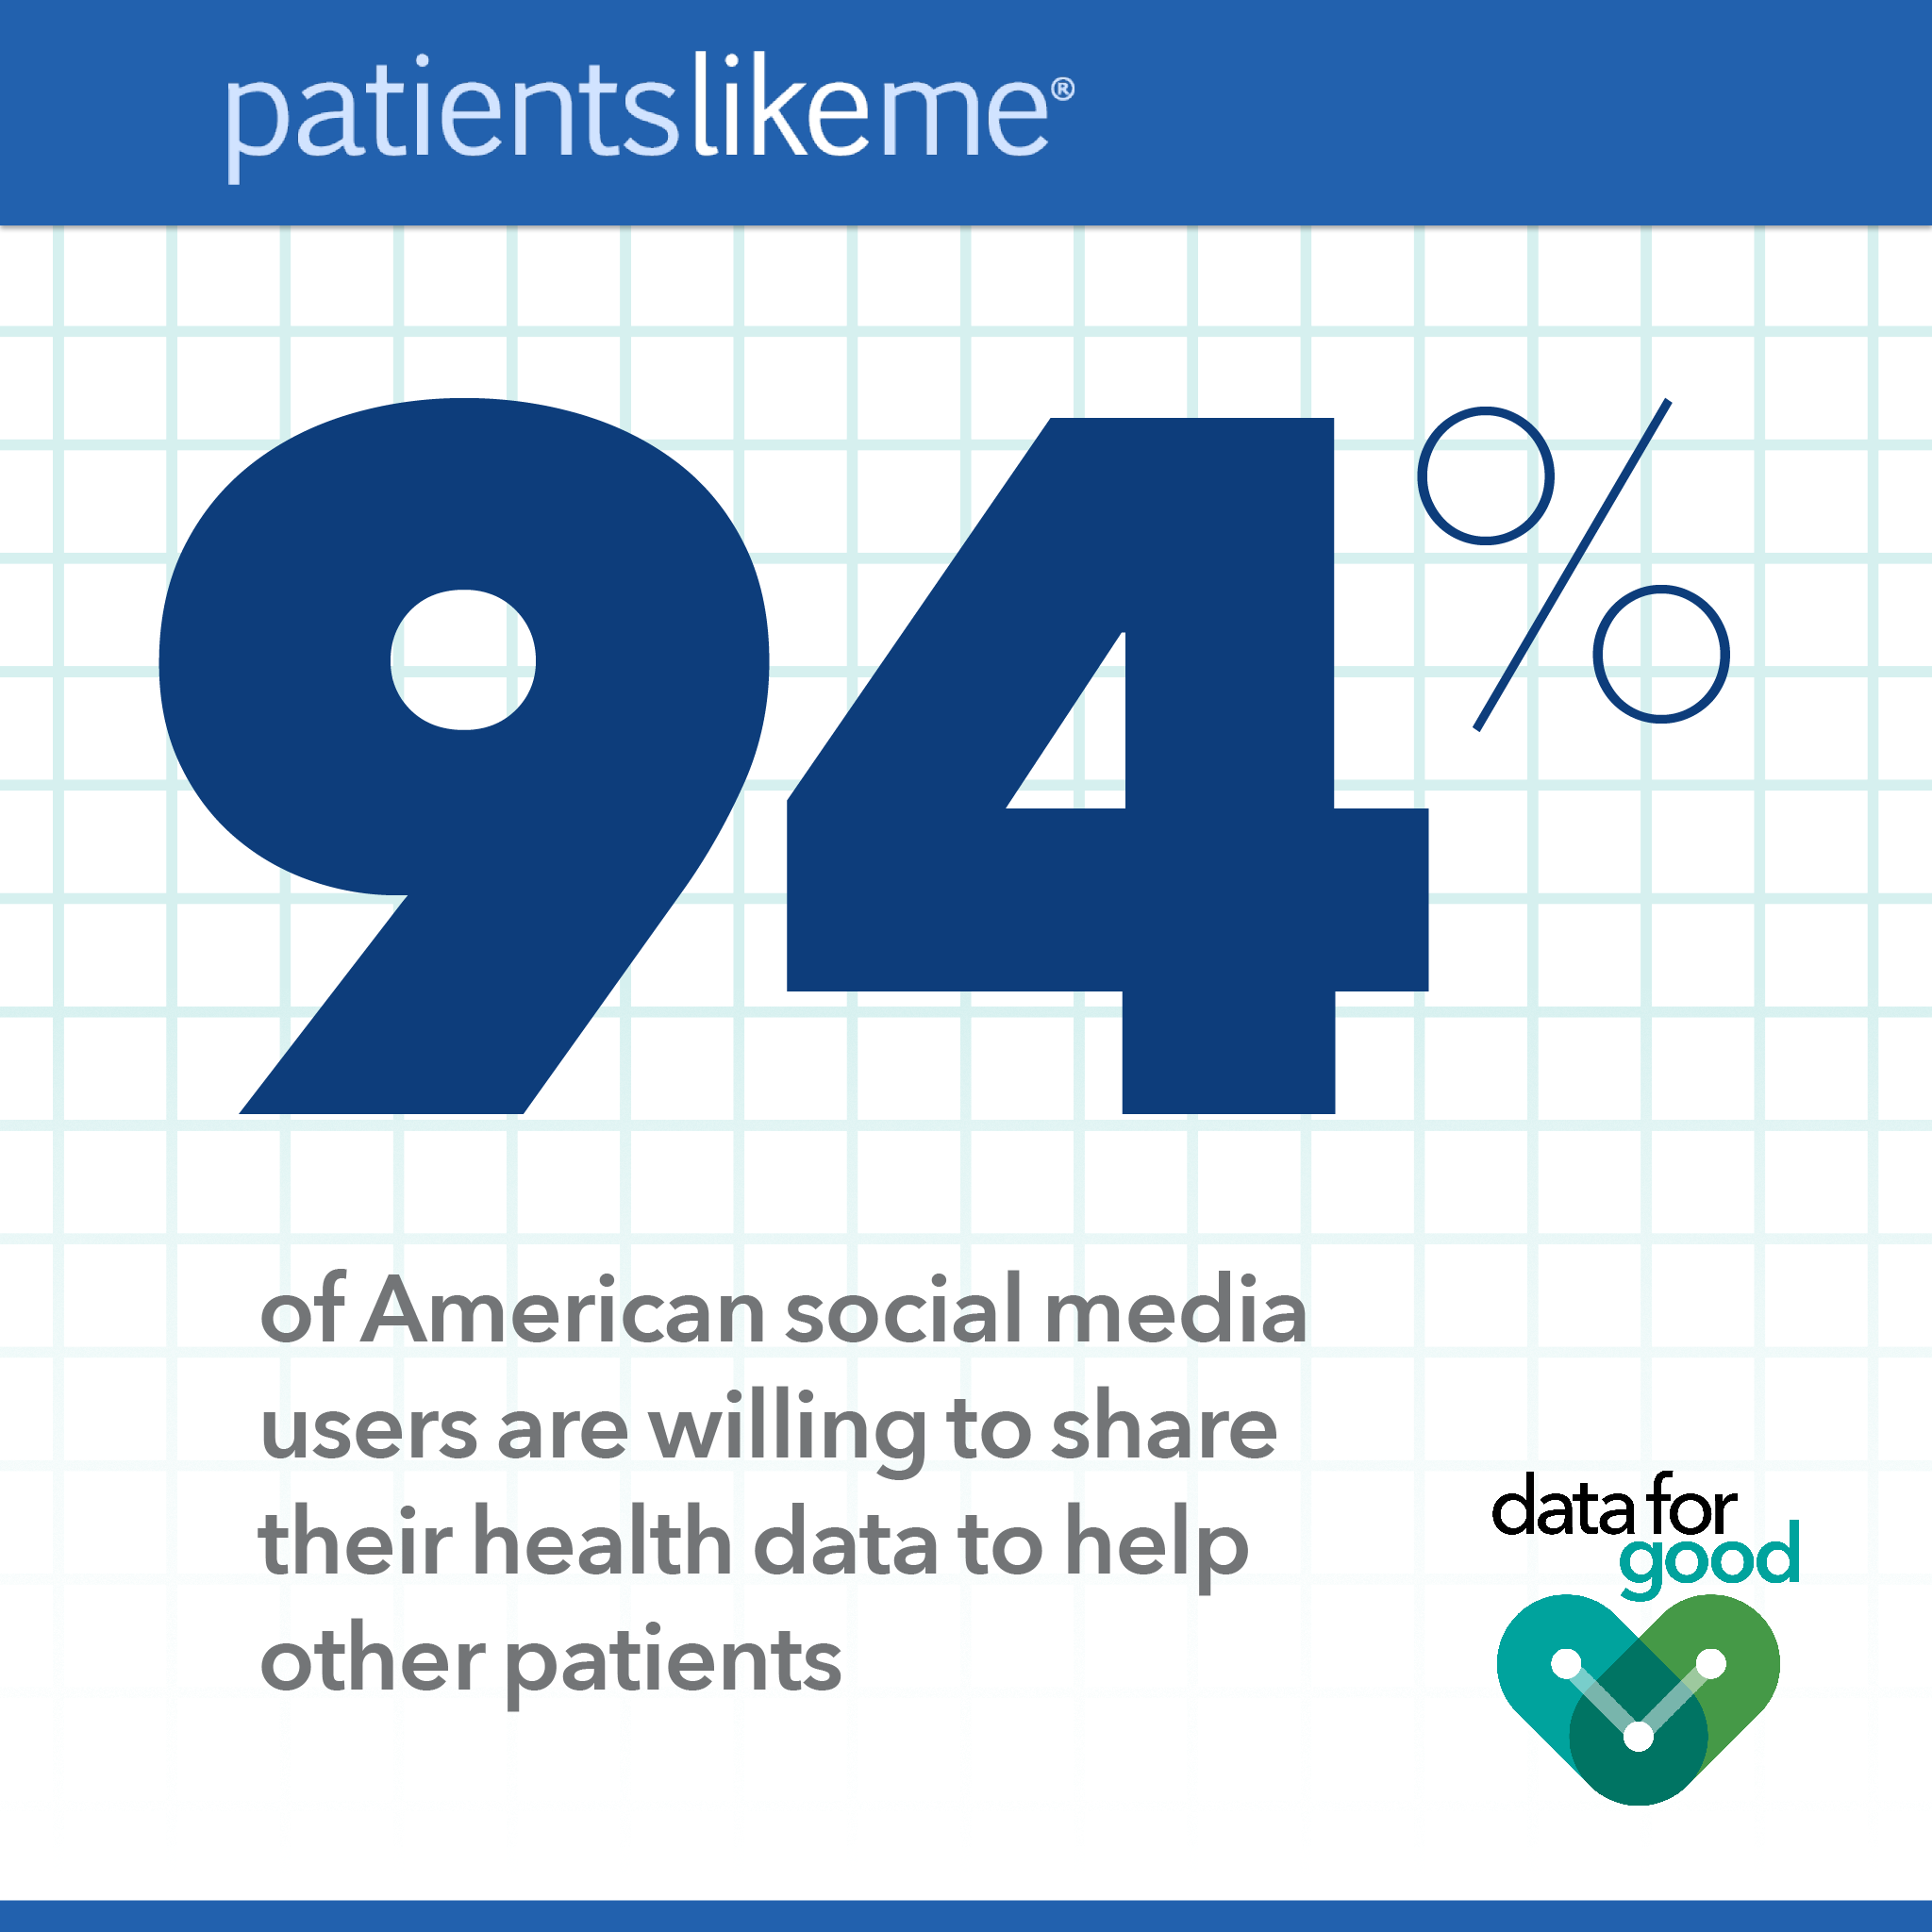 A graphic developed by PatientsLikeMe